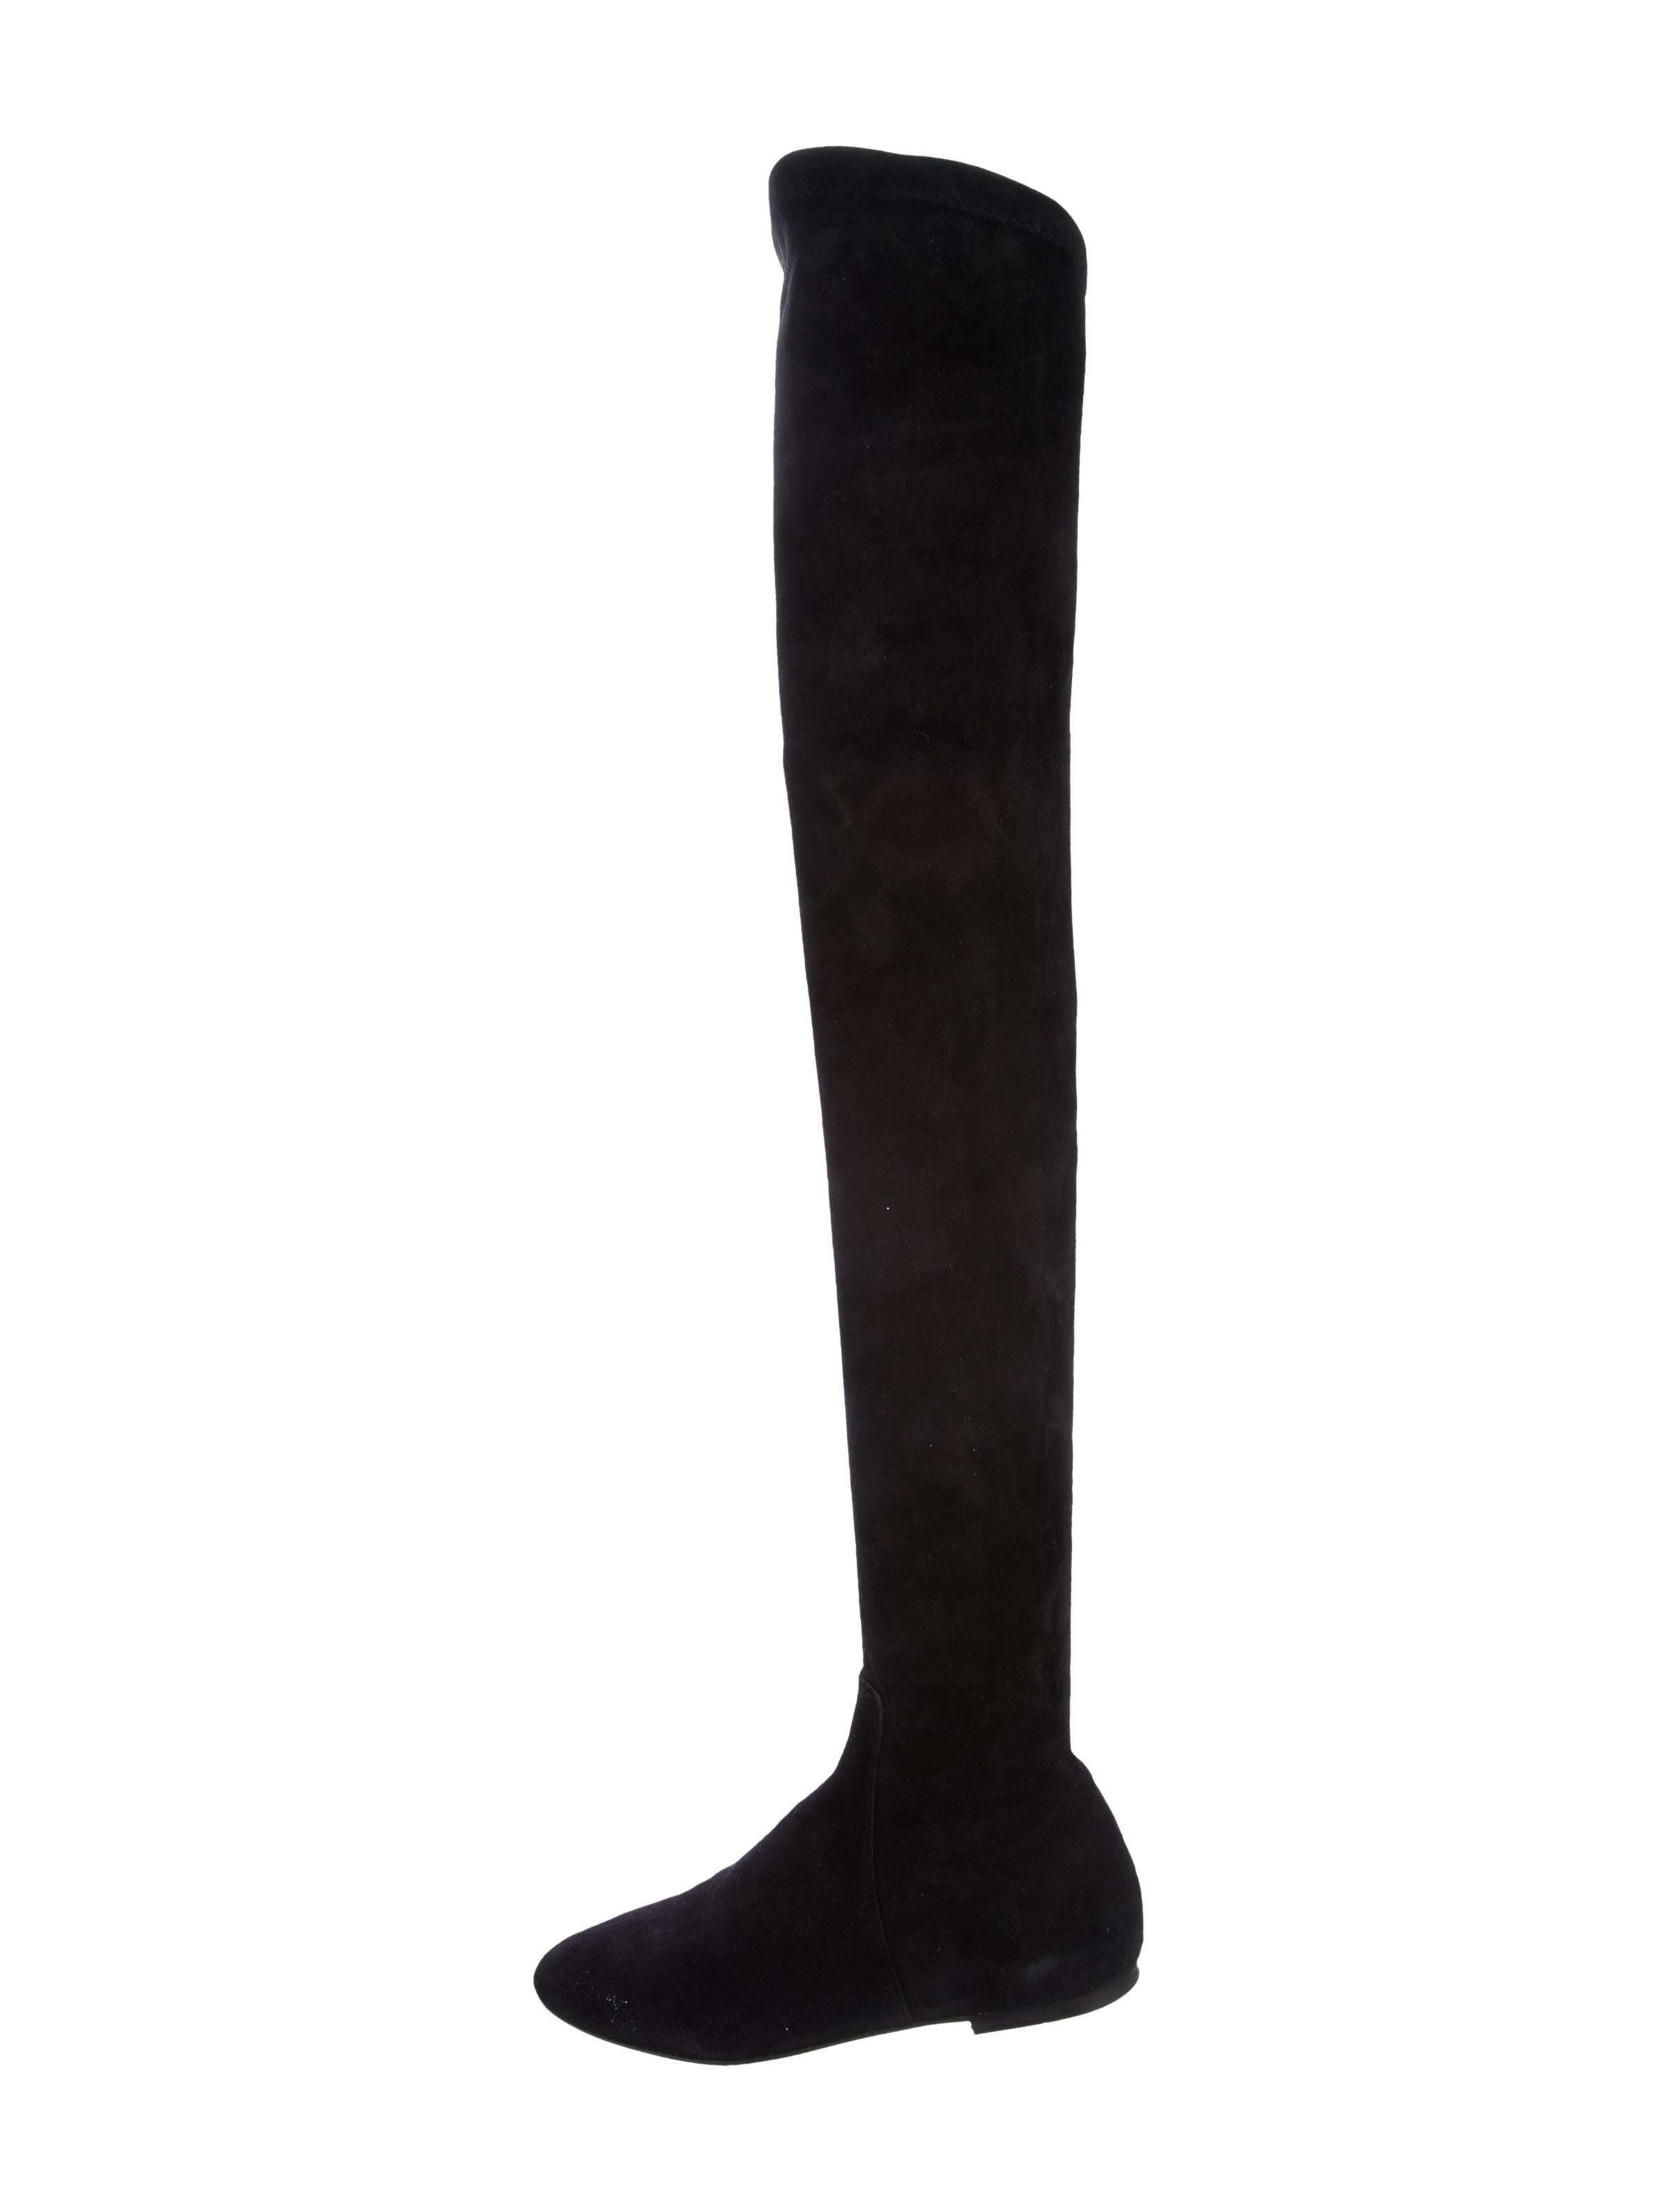 f66753ca303 Étoile Isabel Marant Brenna Over-The-Knee Boots - Shoes - WET45760 ...